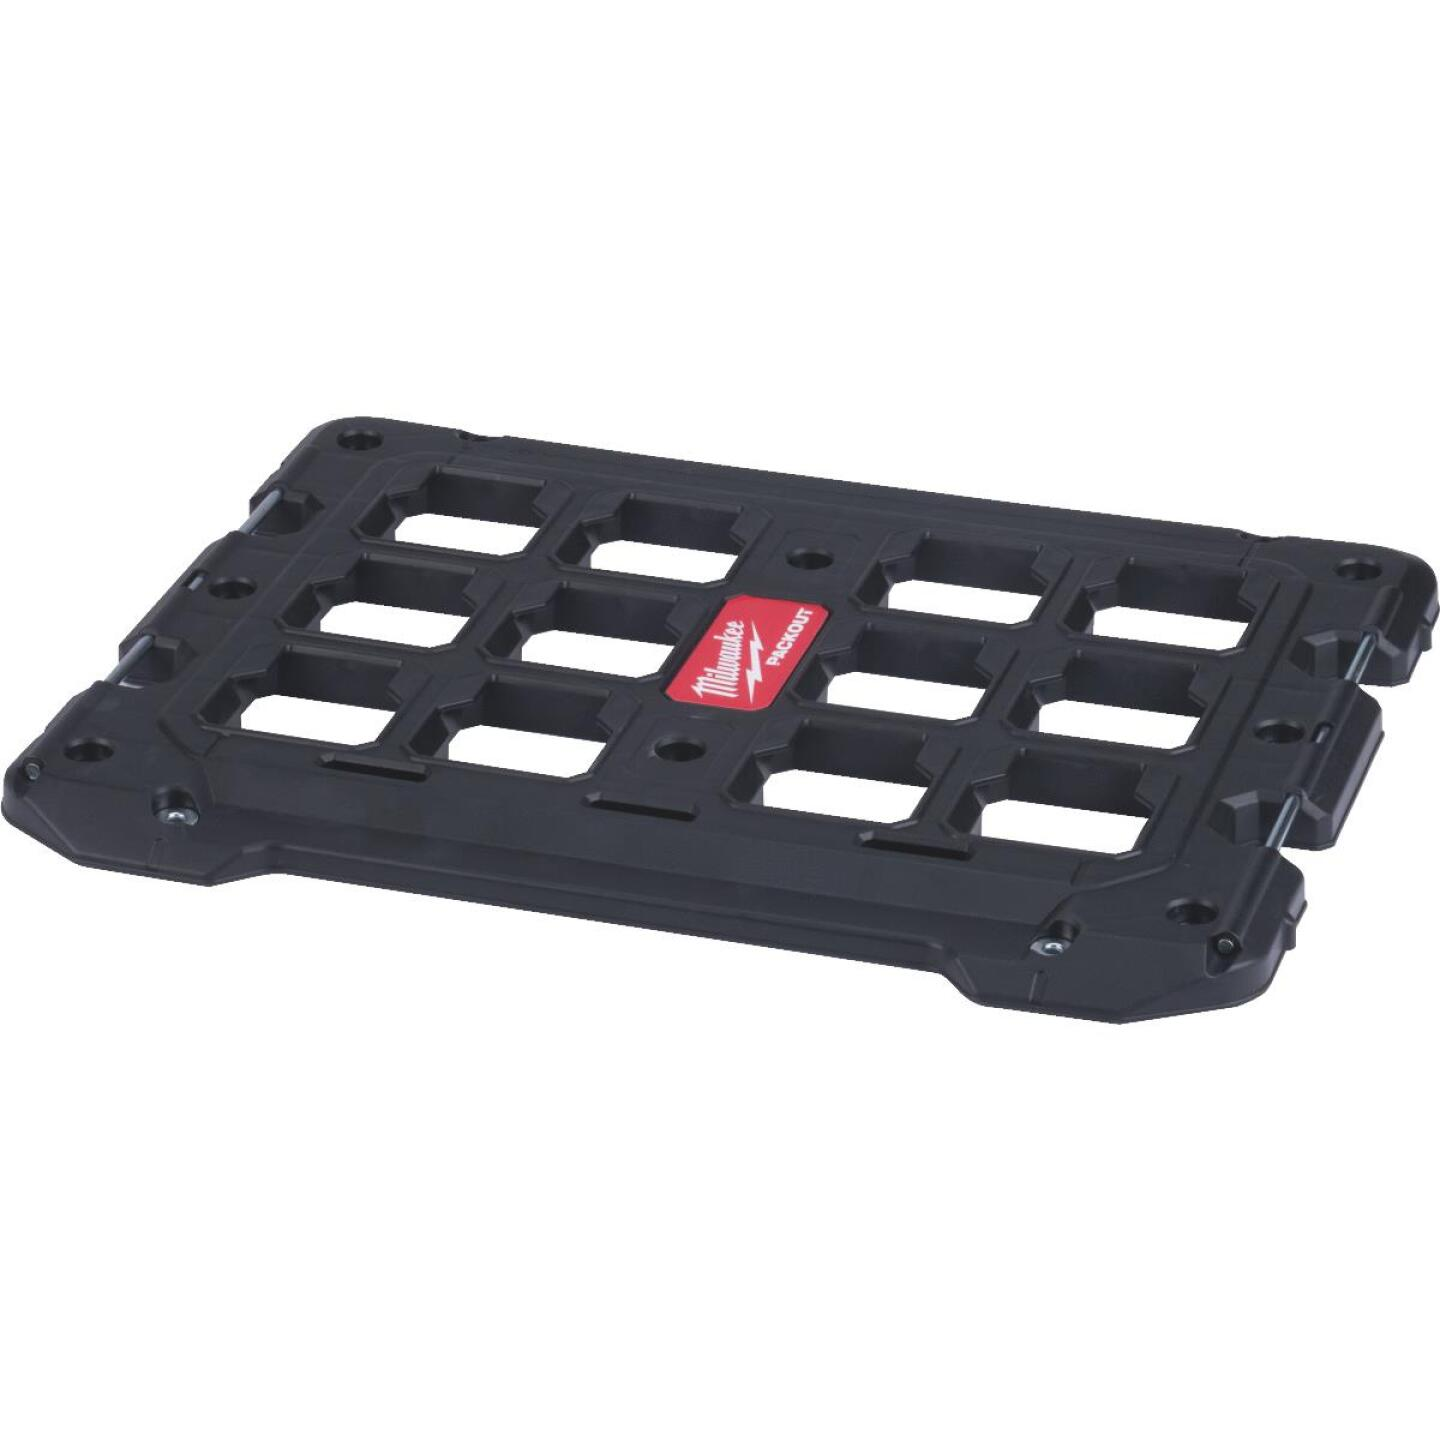 Milwaukee PACKOUT 18.4 In. W x 23.4 In. L Mounting Plate Bracket, 100 Lb. Capacity Image 1